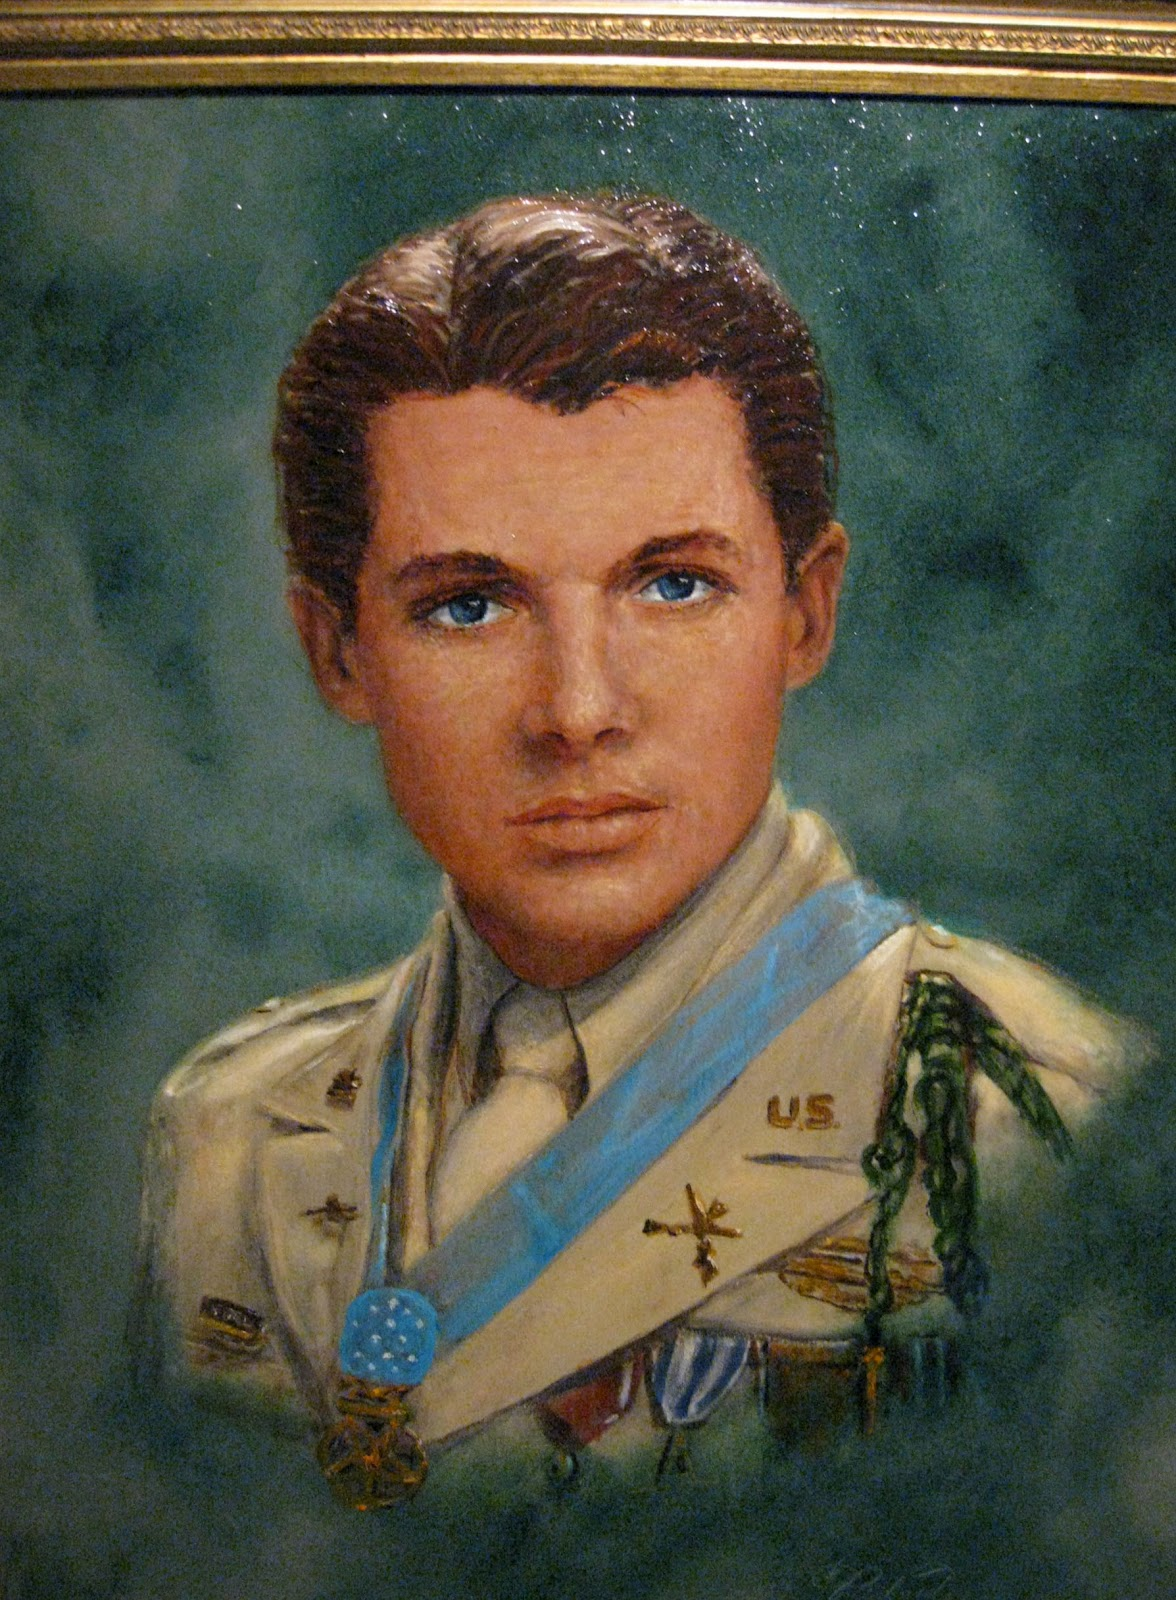 a review of the life and accomplishments of audie l murphy During this same time, actor james cagney invited murphy to hollywood in september 1945, when he saw murphy's photo on the cover of life magazine the next couple of years in california were hard times for audie murphy.